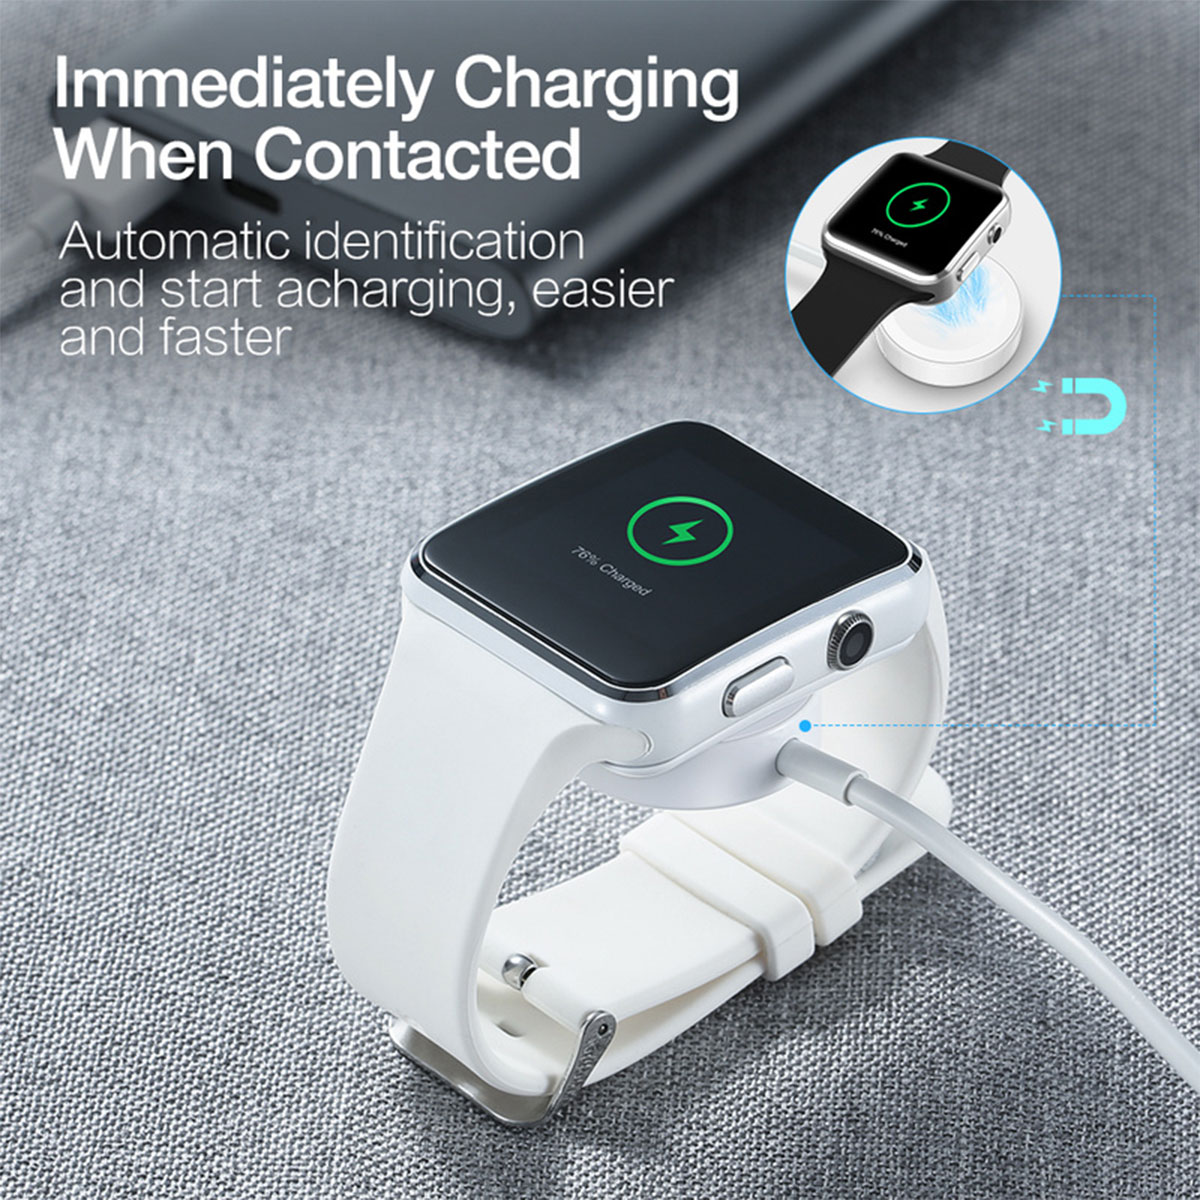 Wireless Charger USB Cable Magnetic Smart Watch Charger Round / Square / Octagon Shape For Apple Watch/iWatch Series 1 2 3